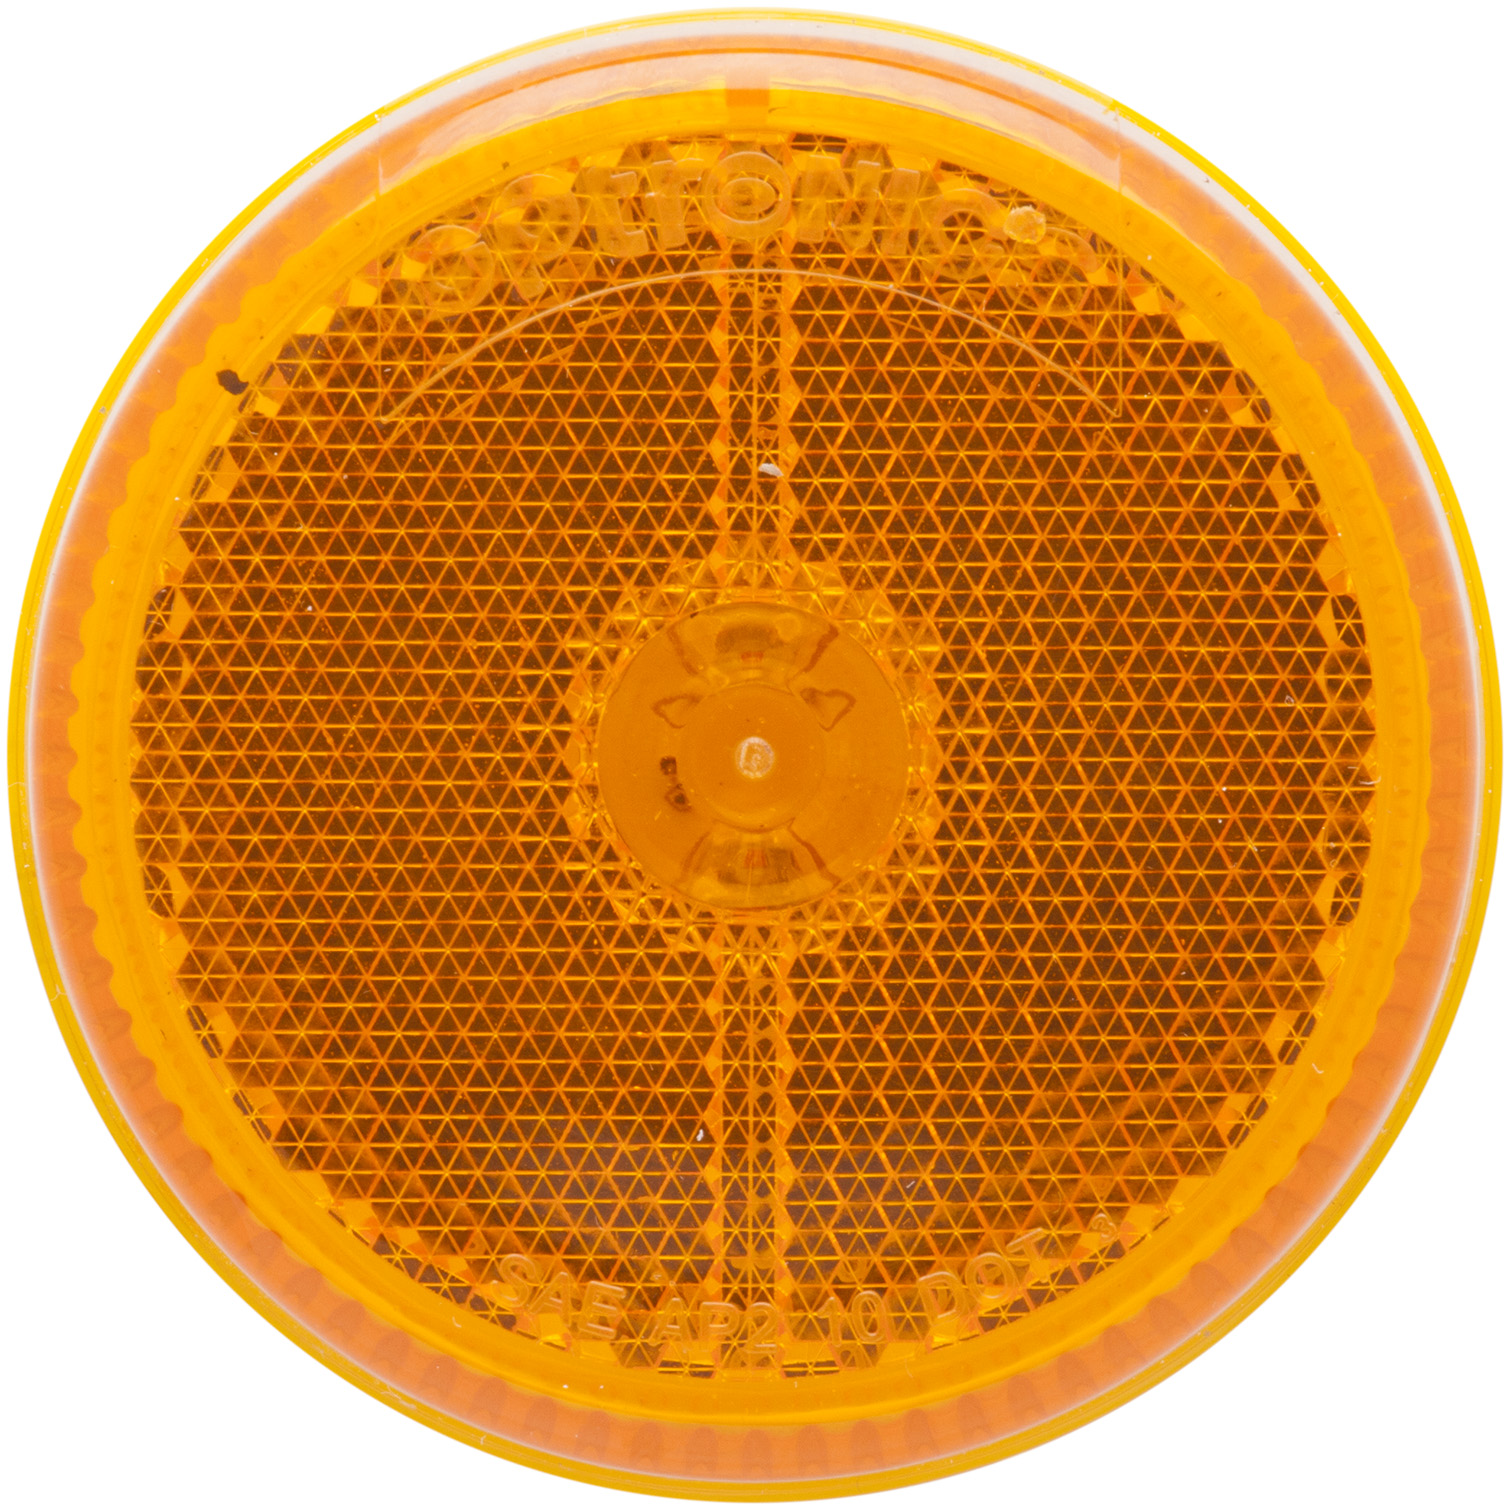 MCL59AB_OPTRONICS MCL59AB Yellow 2.5 in. Marker Clearance Light for Grommet Mount with Reflex